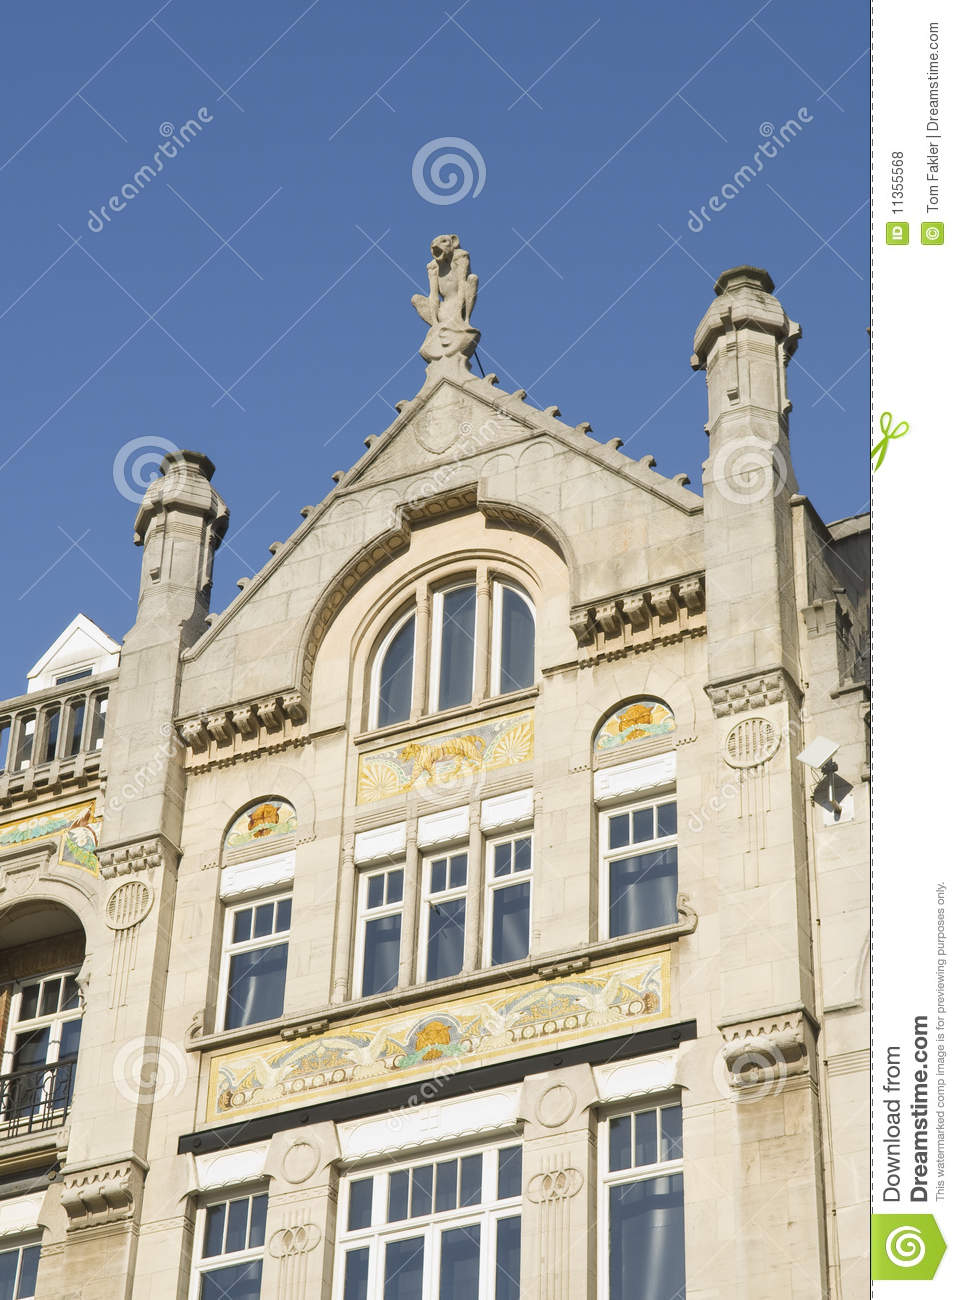 217 Zoo Antwerp Photos Free Royalty Free Stock Photos From Dreamstime